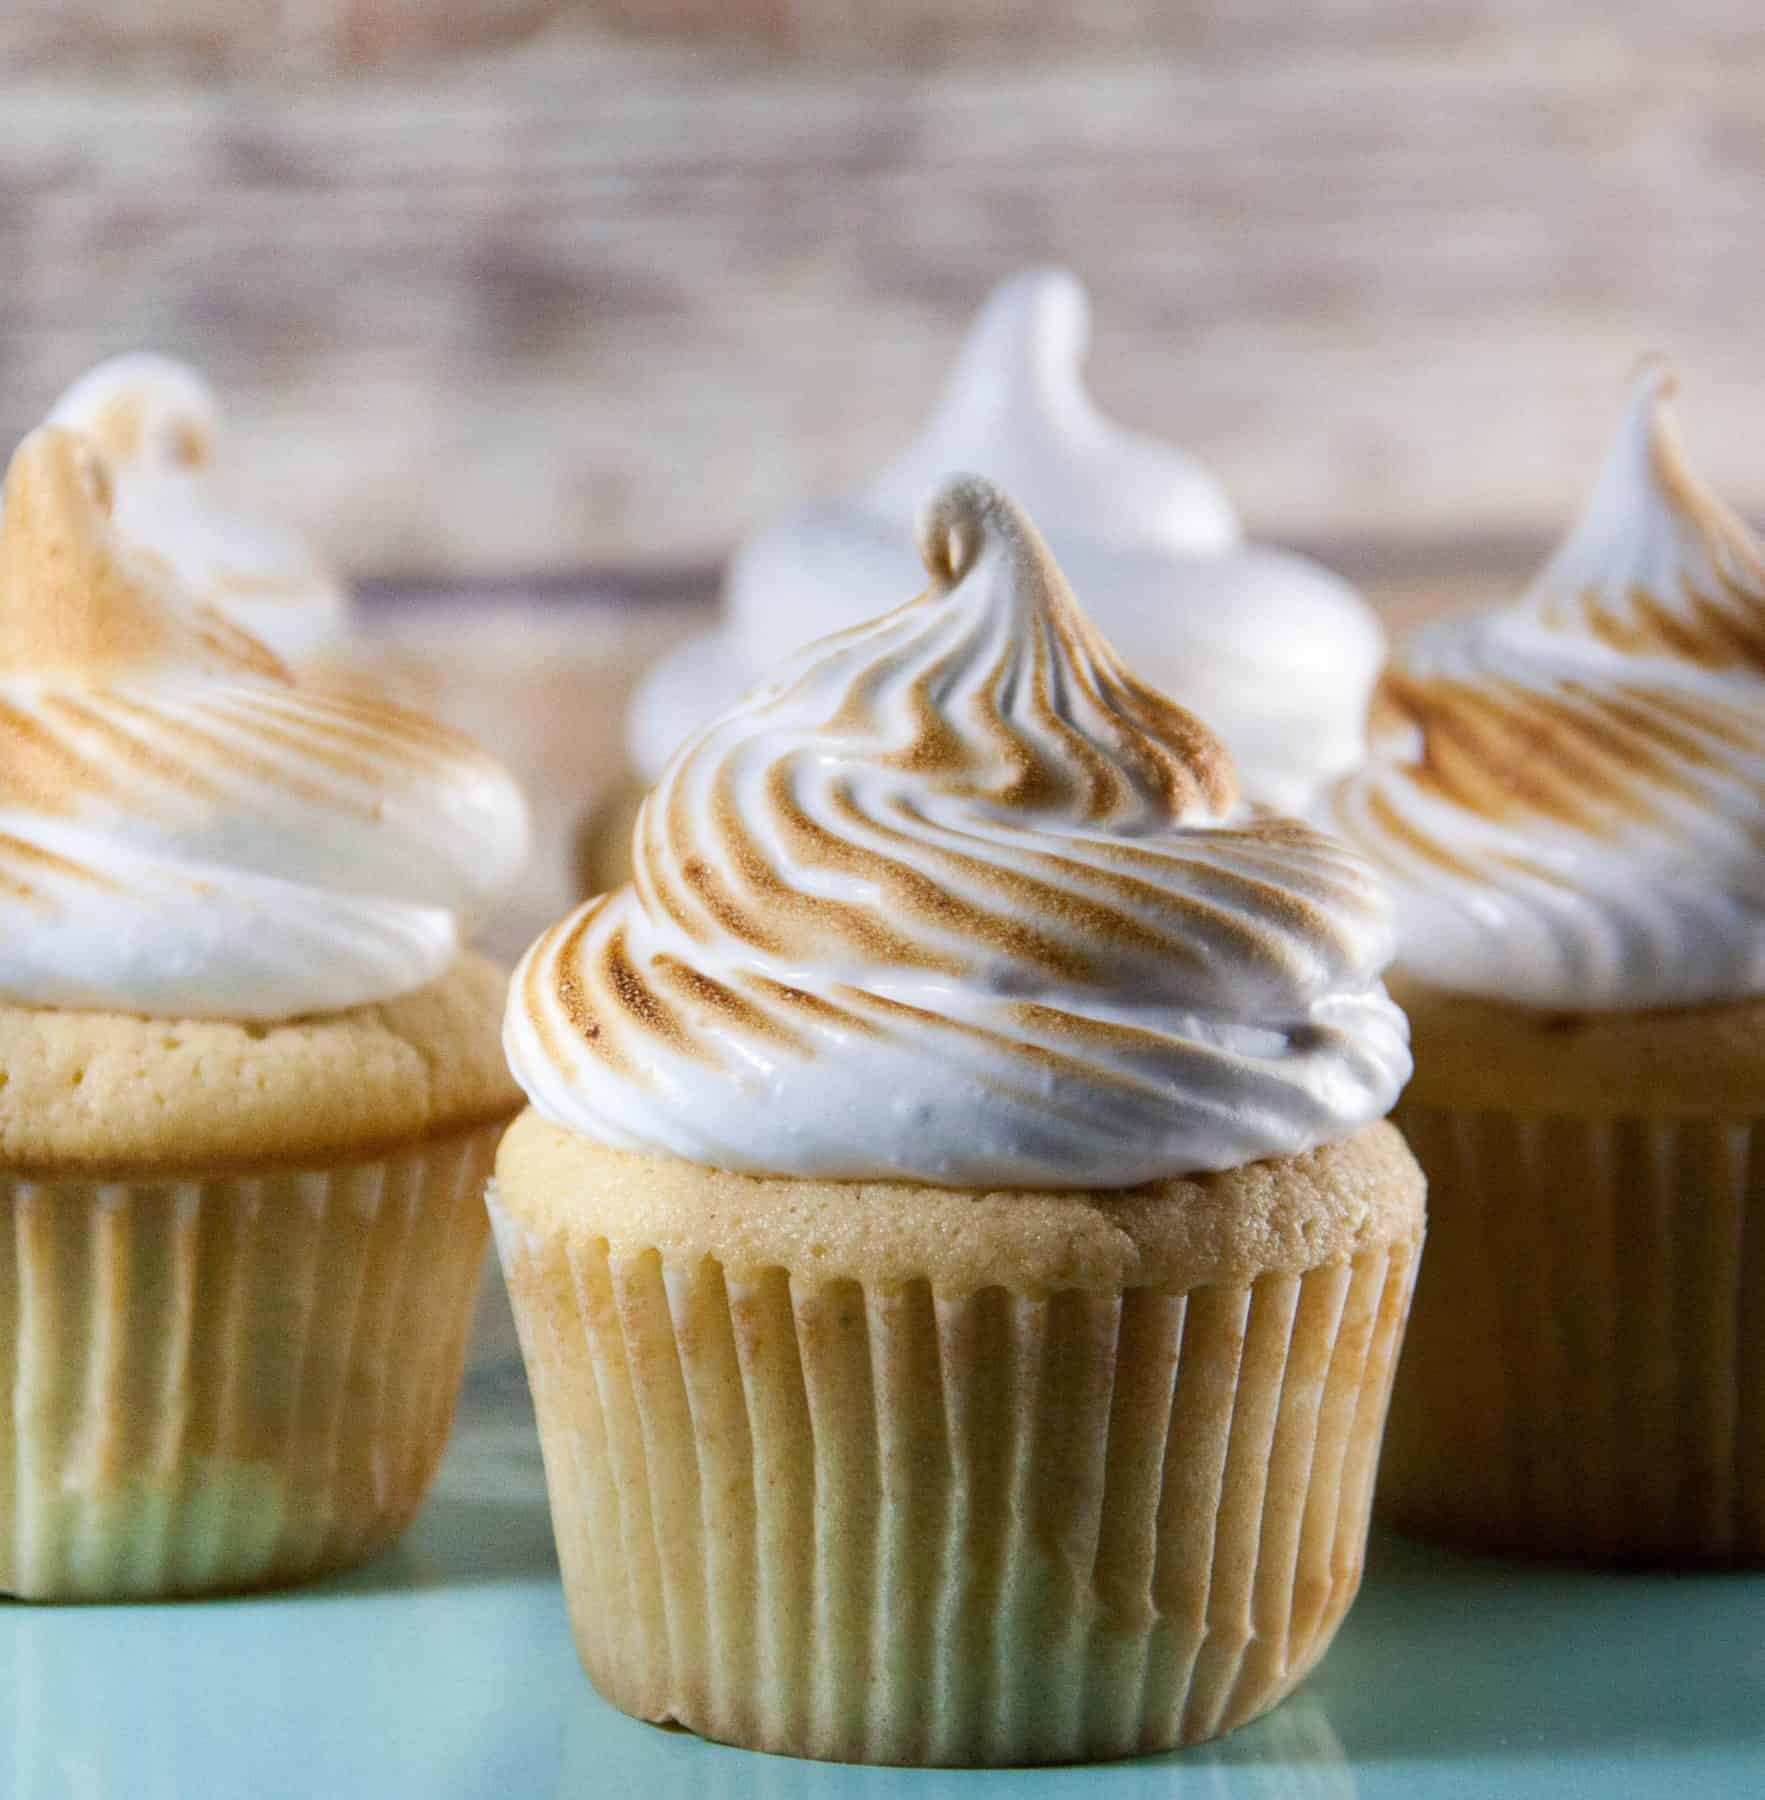 Peanut butter and marshmallow fluff Cupcakes